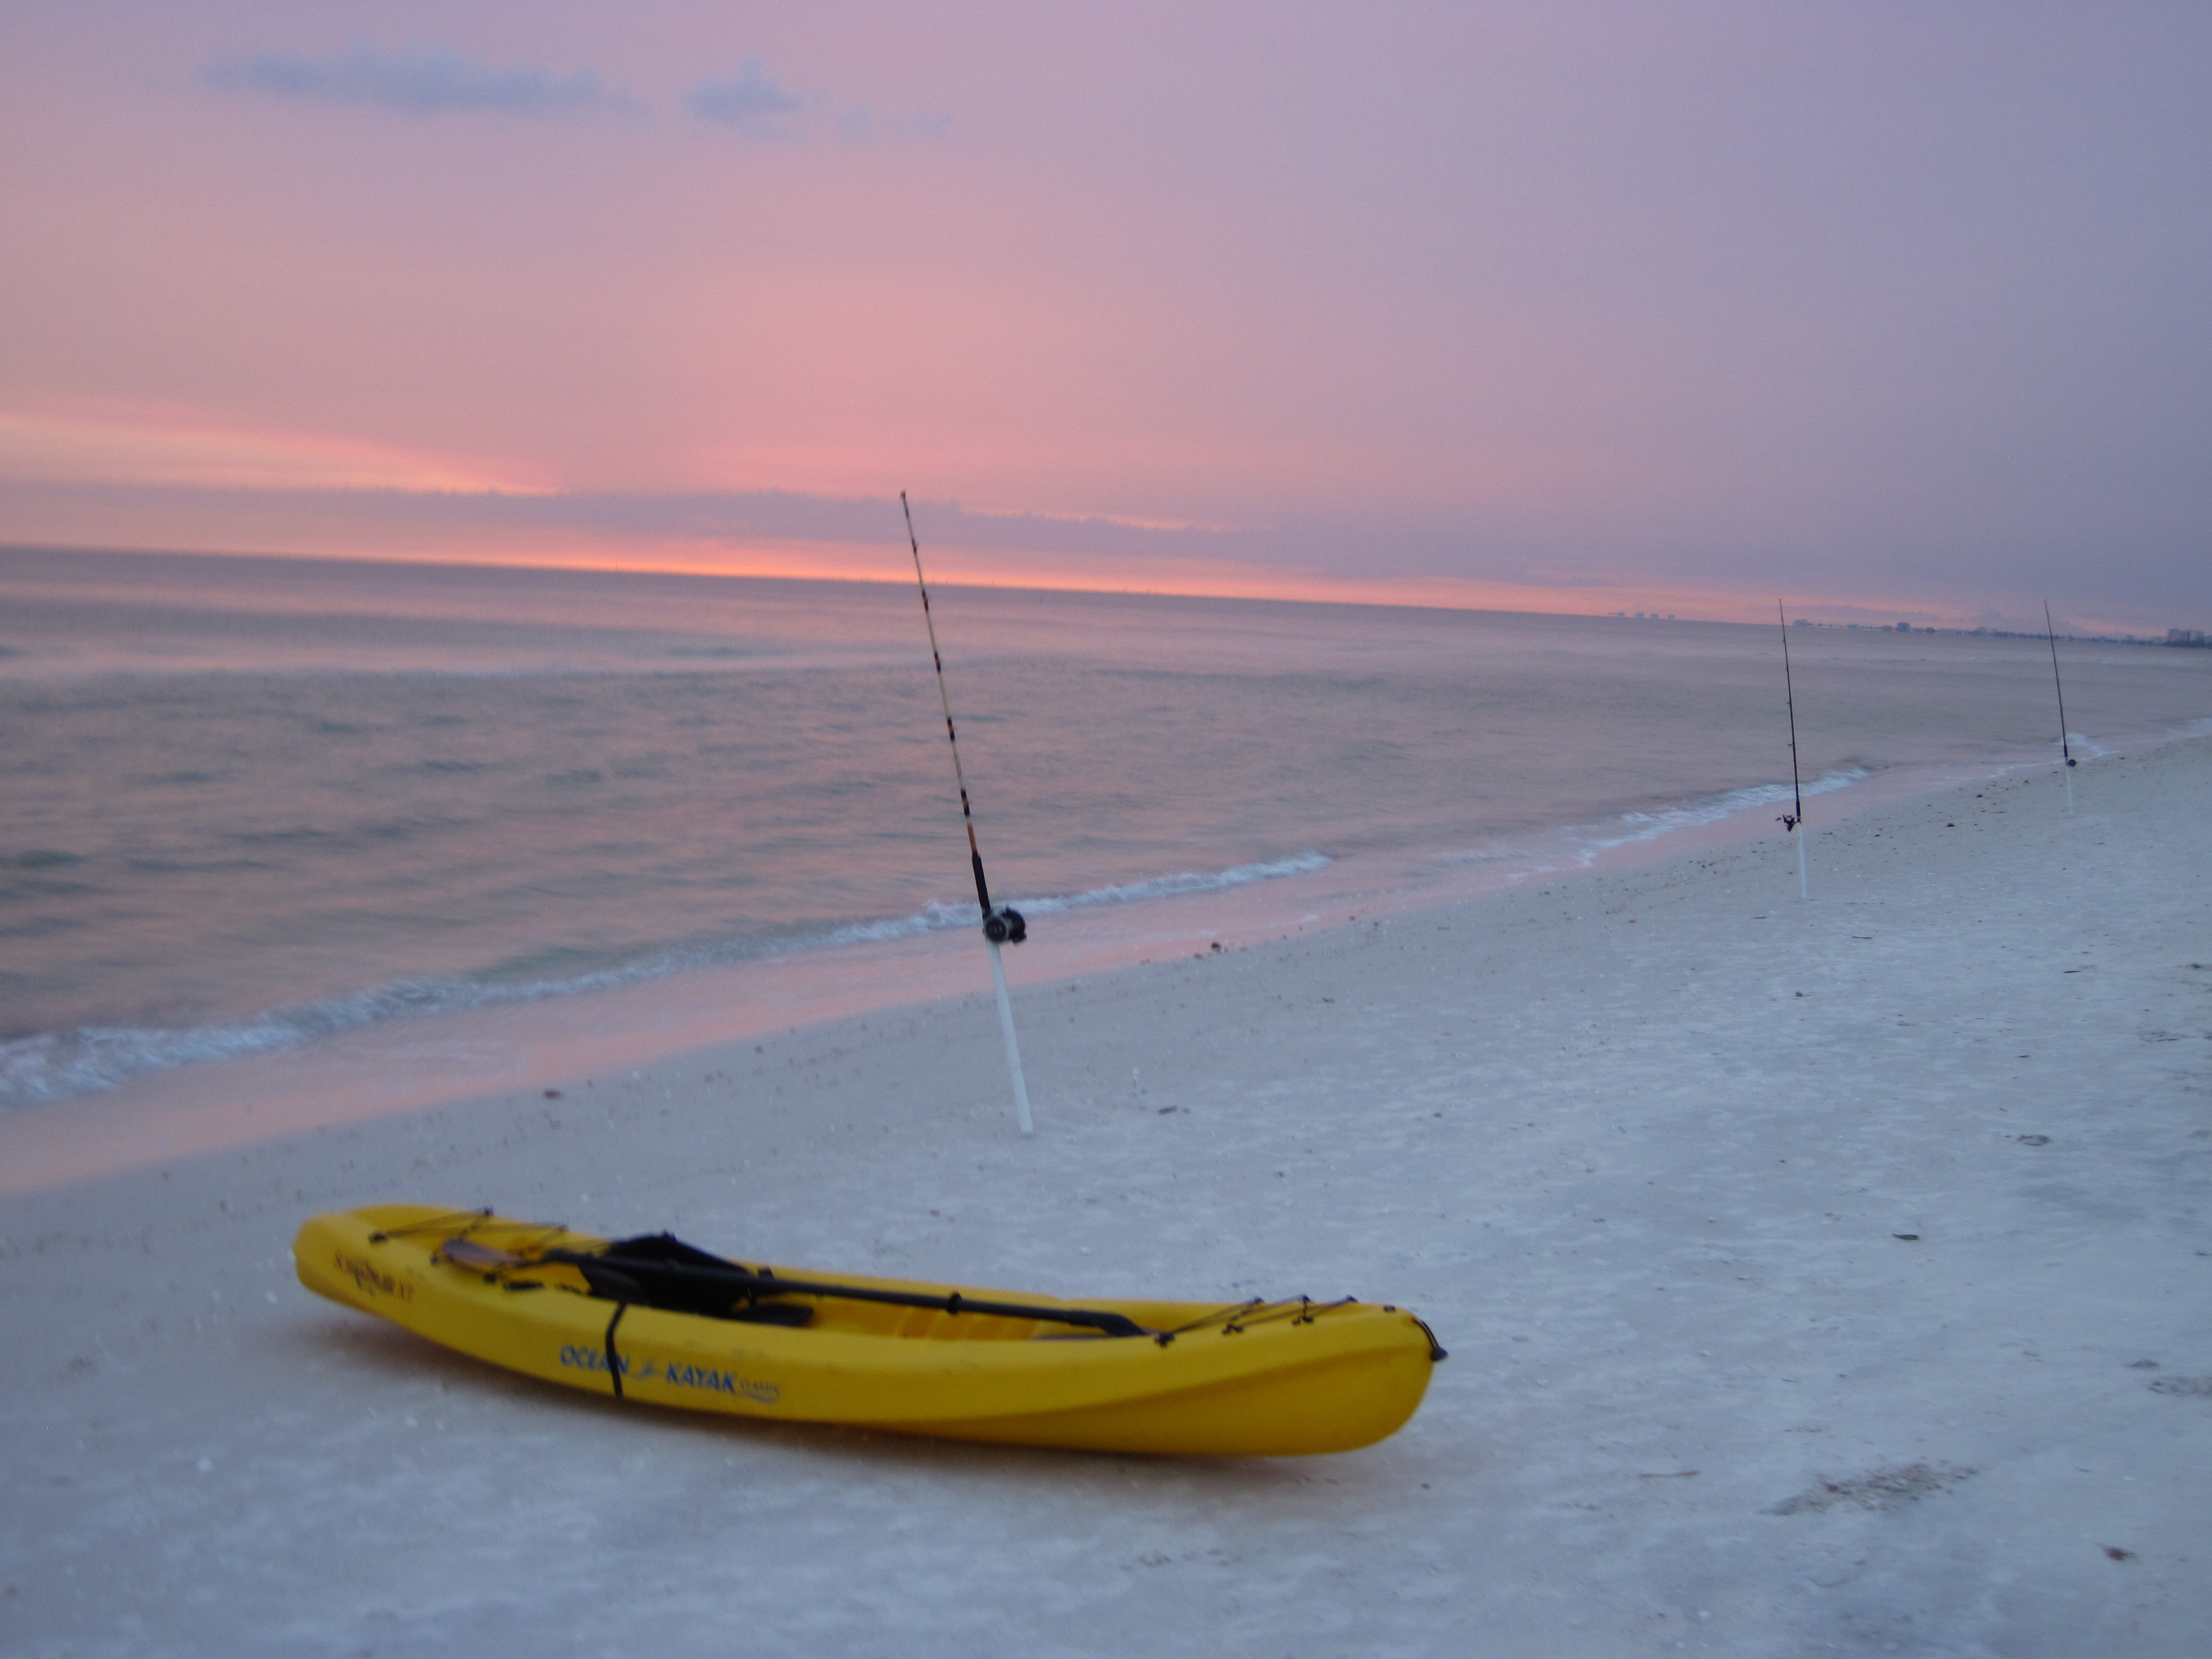 Every Year From May To September The Forum Comes Alive With Beach Shark Fishing Reports Naples Sanibel And Incredible Pictures Go Along